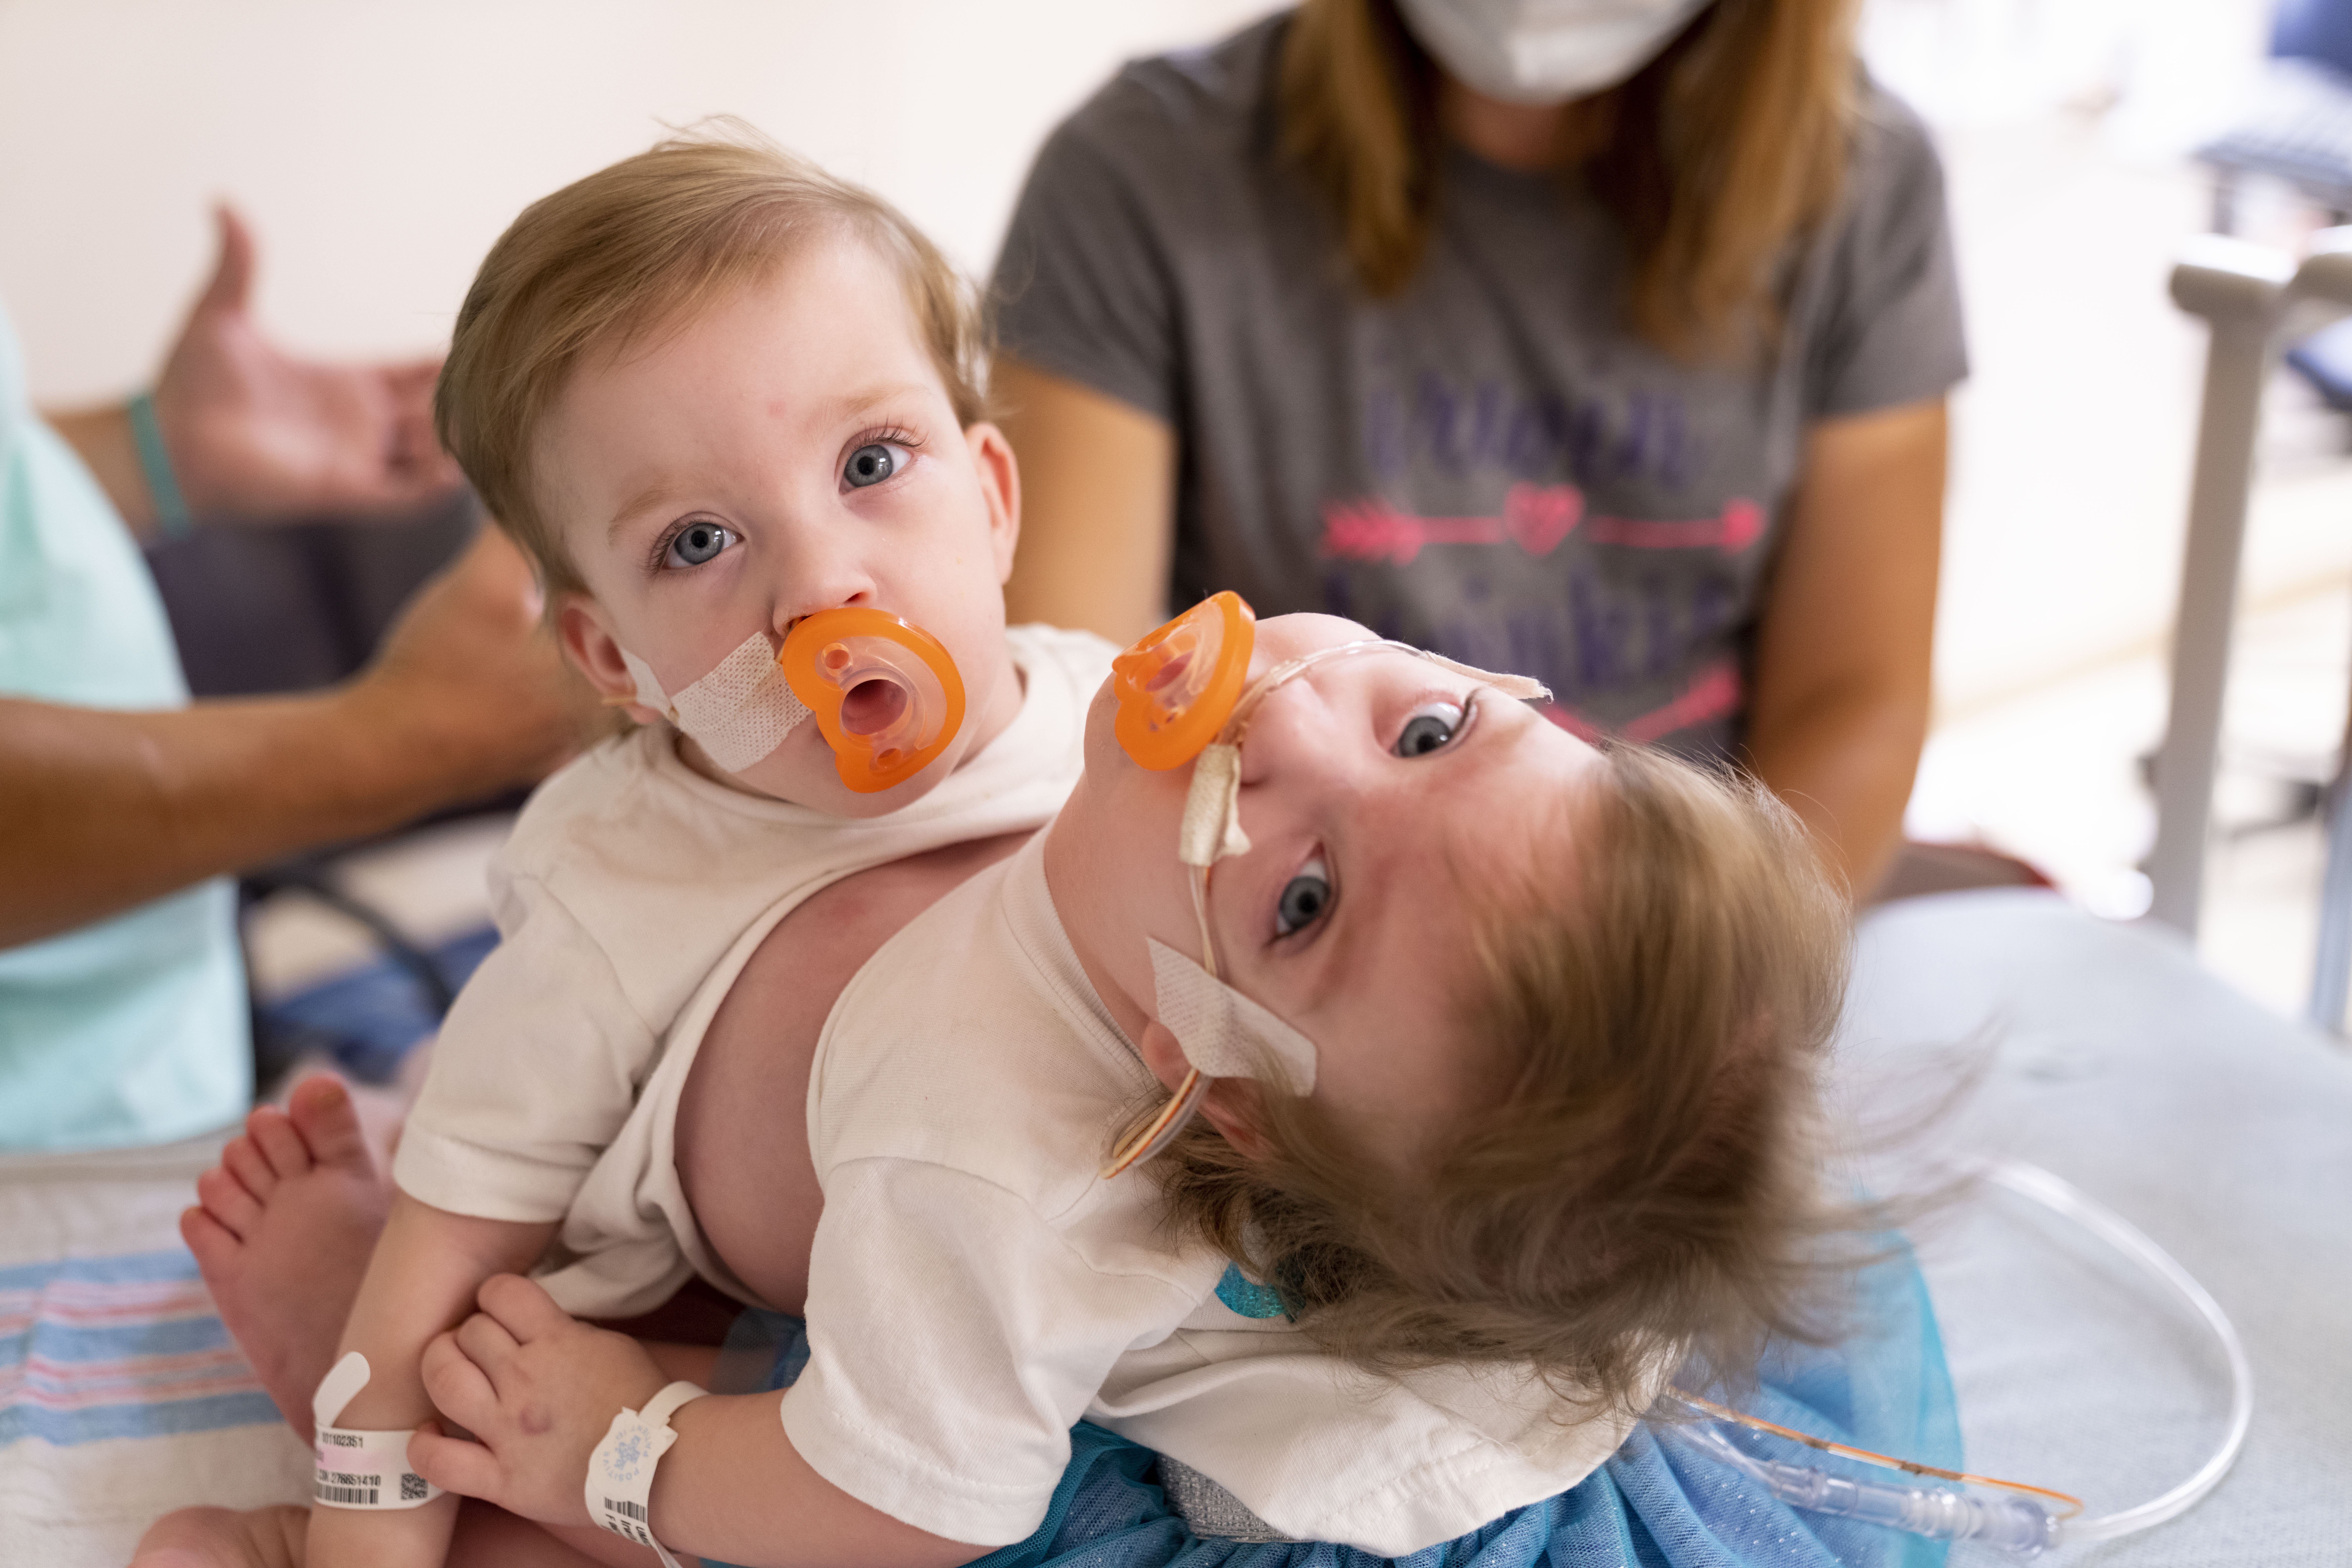 Conjoined Michigan twins separated in 11-hour surgery